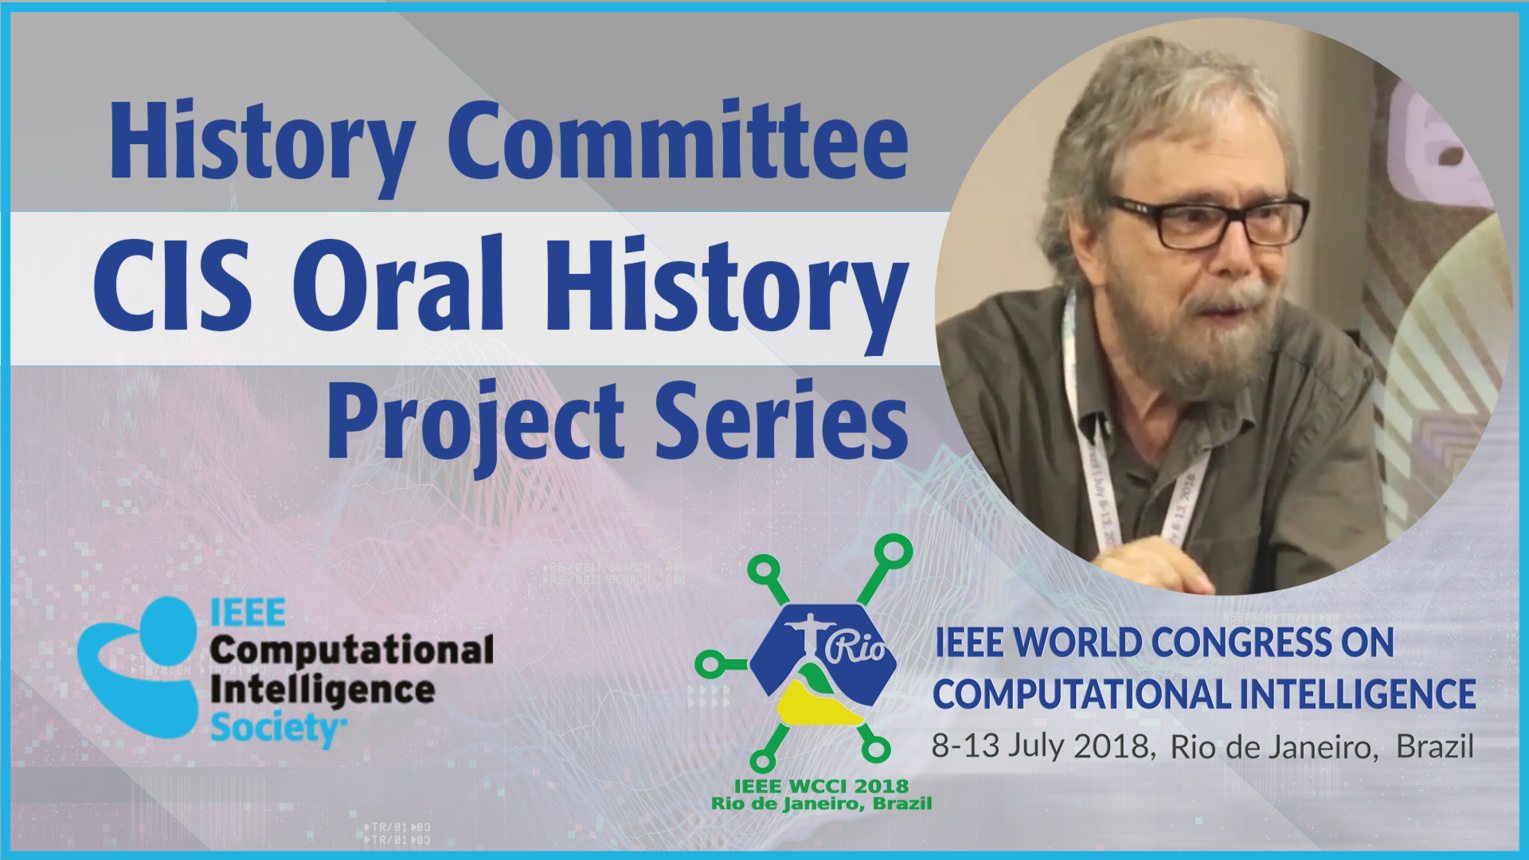 Fernando Gomide: History Committee CIS Oral History Project Series